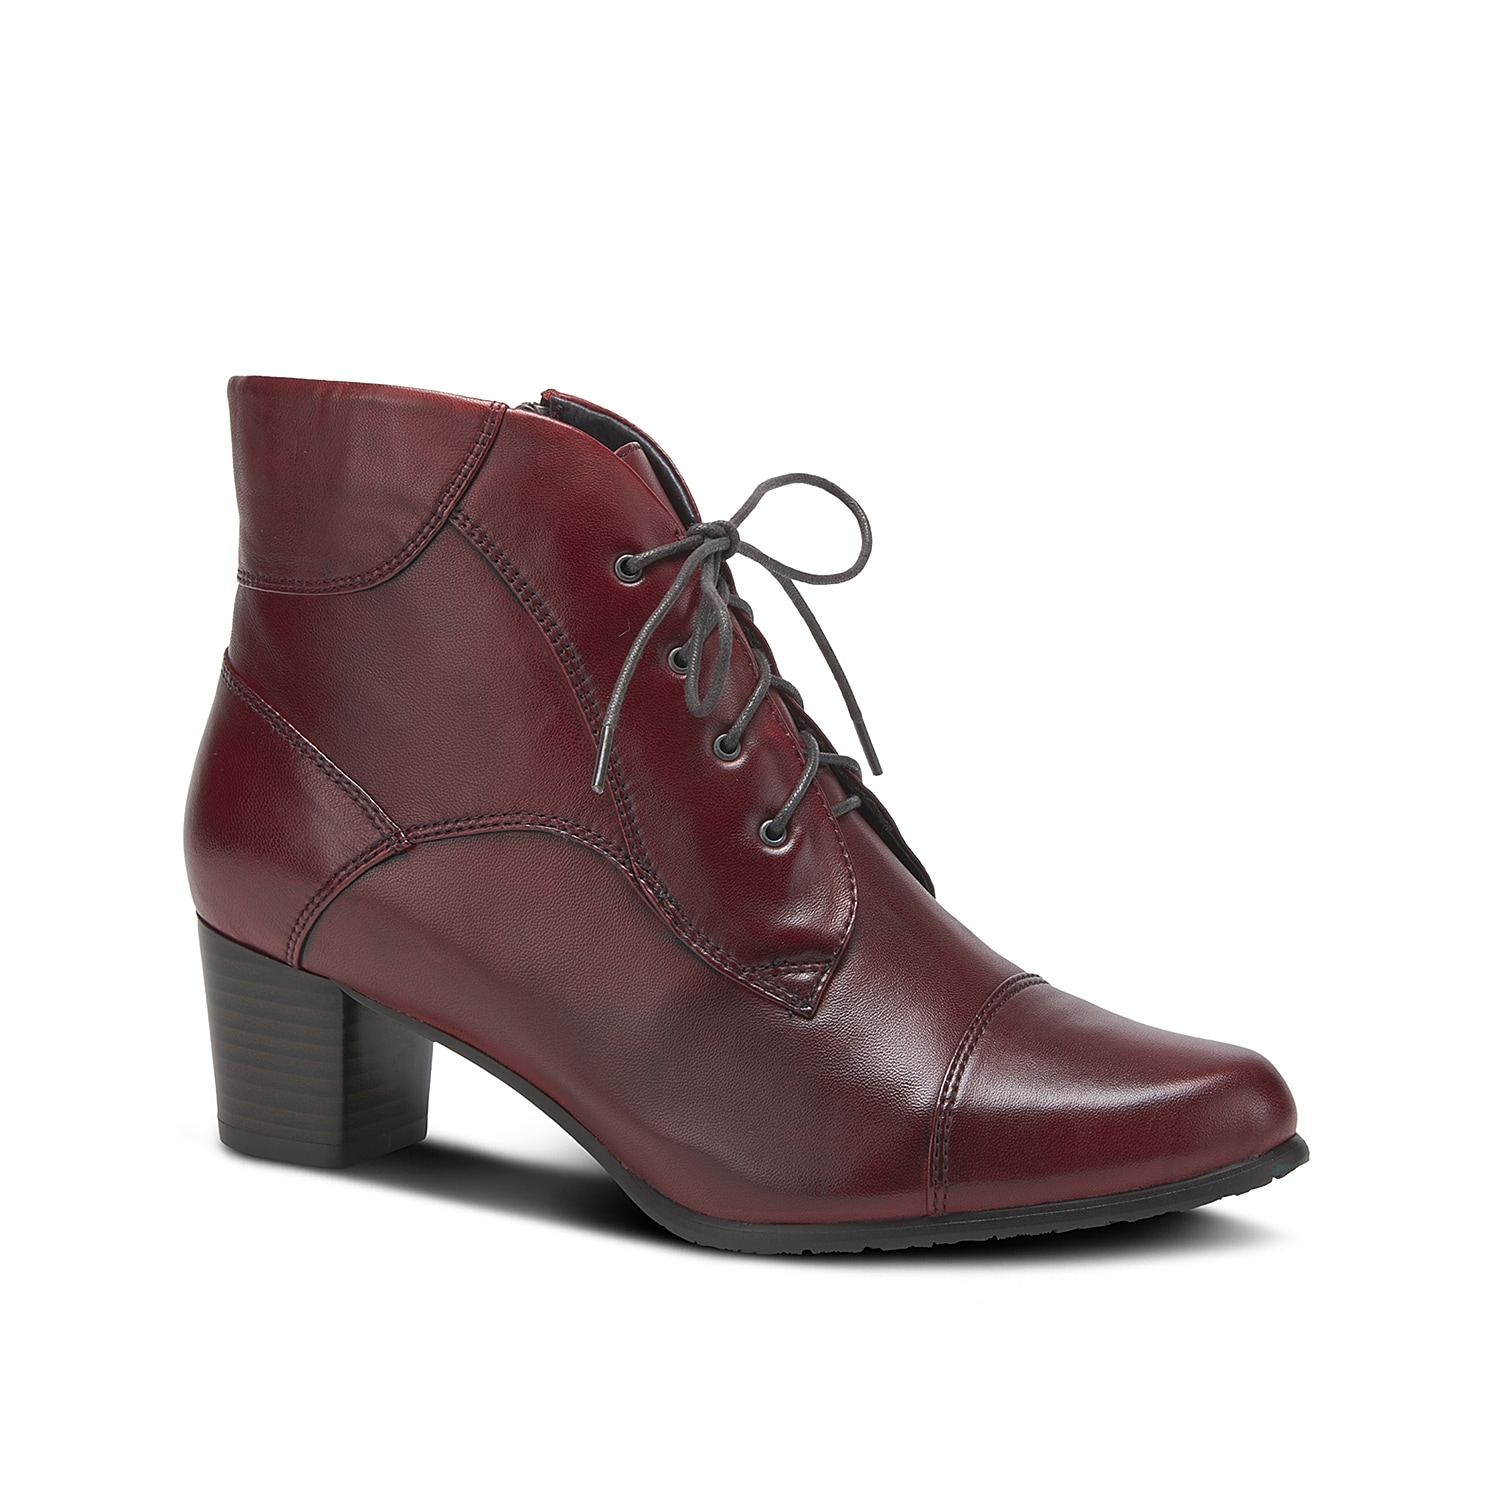 Add a classy finish to cool weather looks with the Larma bootie from Spring Step. This ankle boot features a sleek almond toe and low block heel for versatile style.Click here for Boot Measuring Guide.